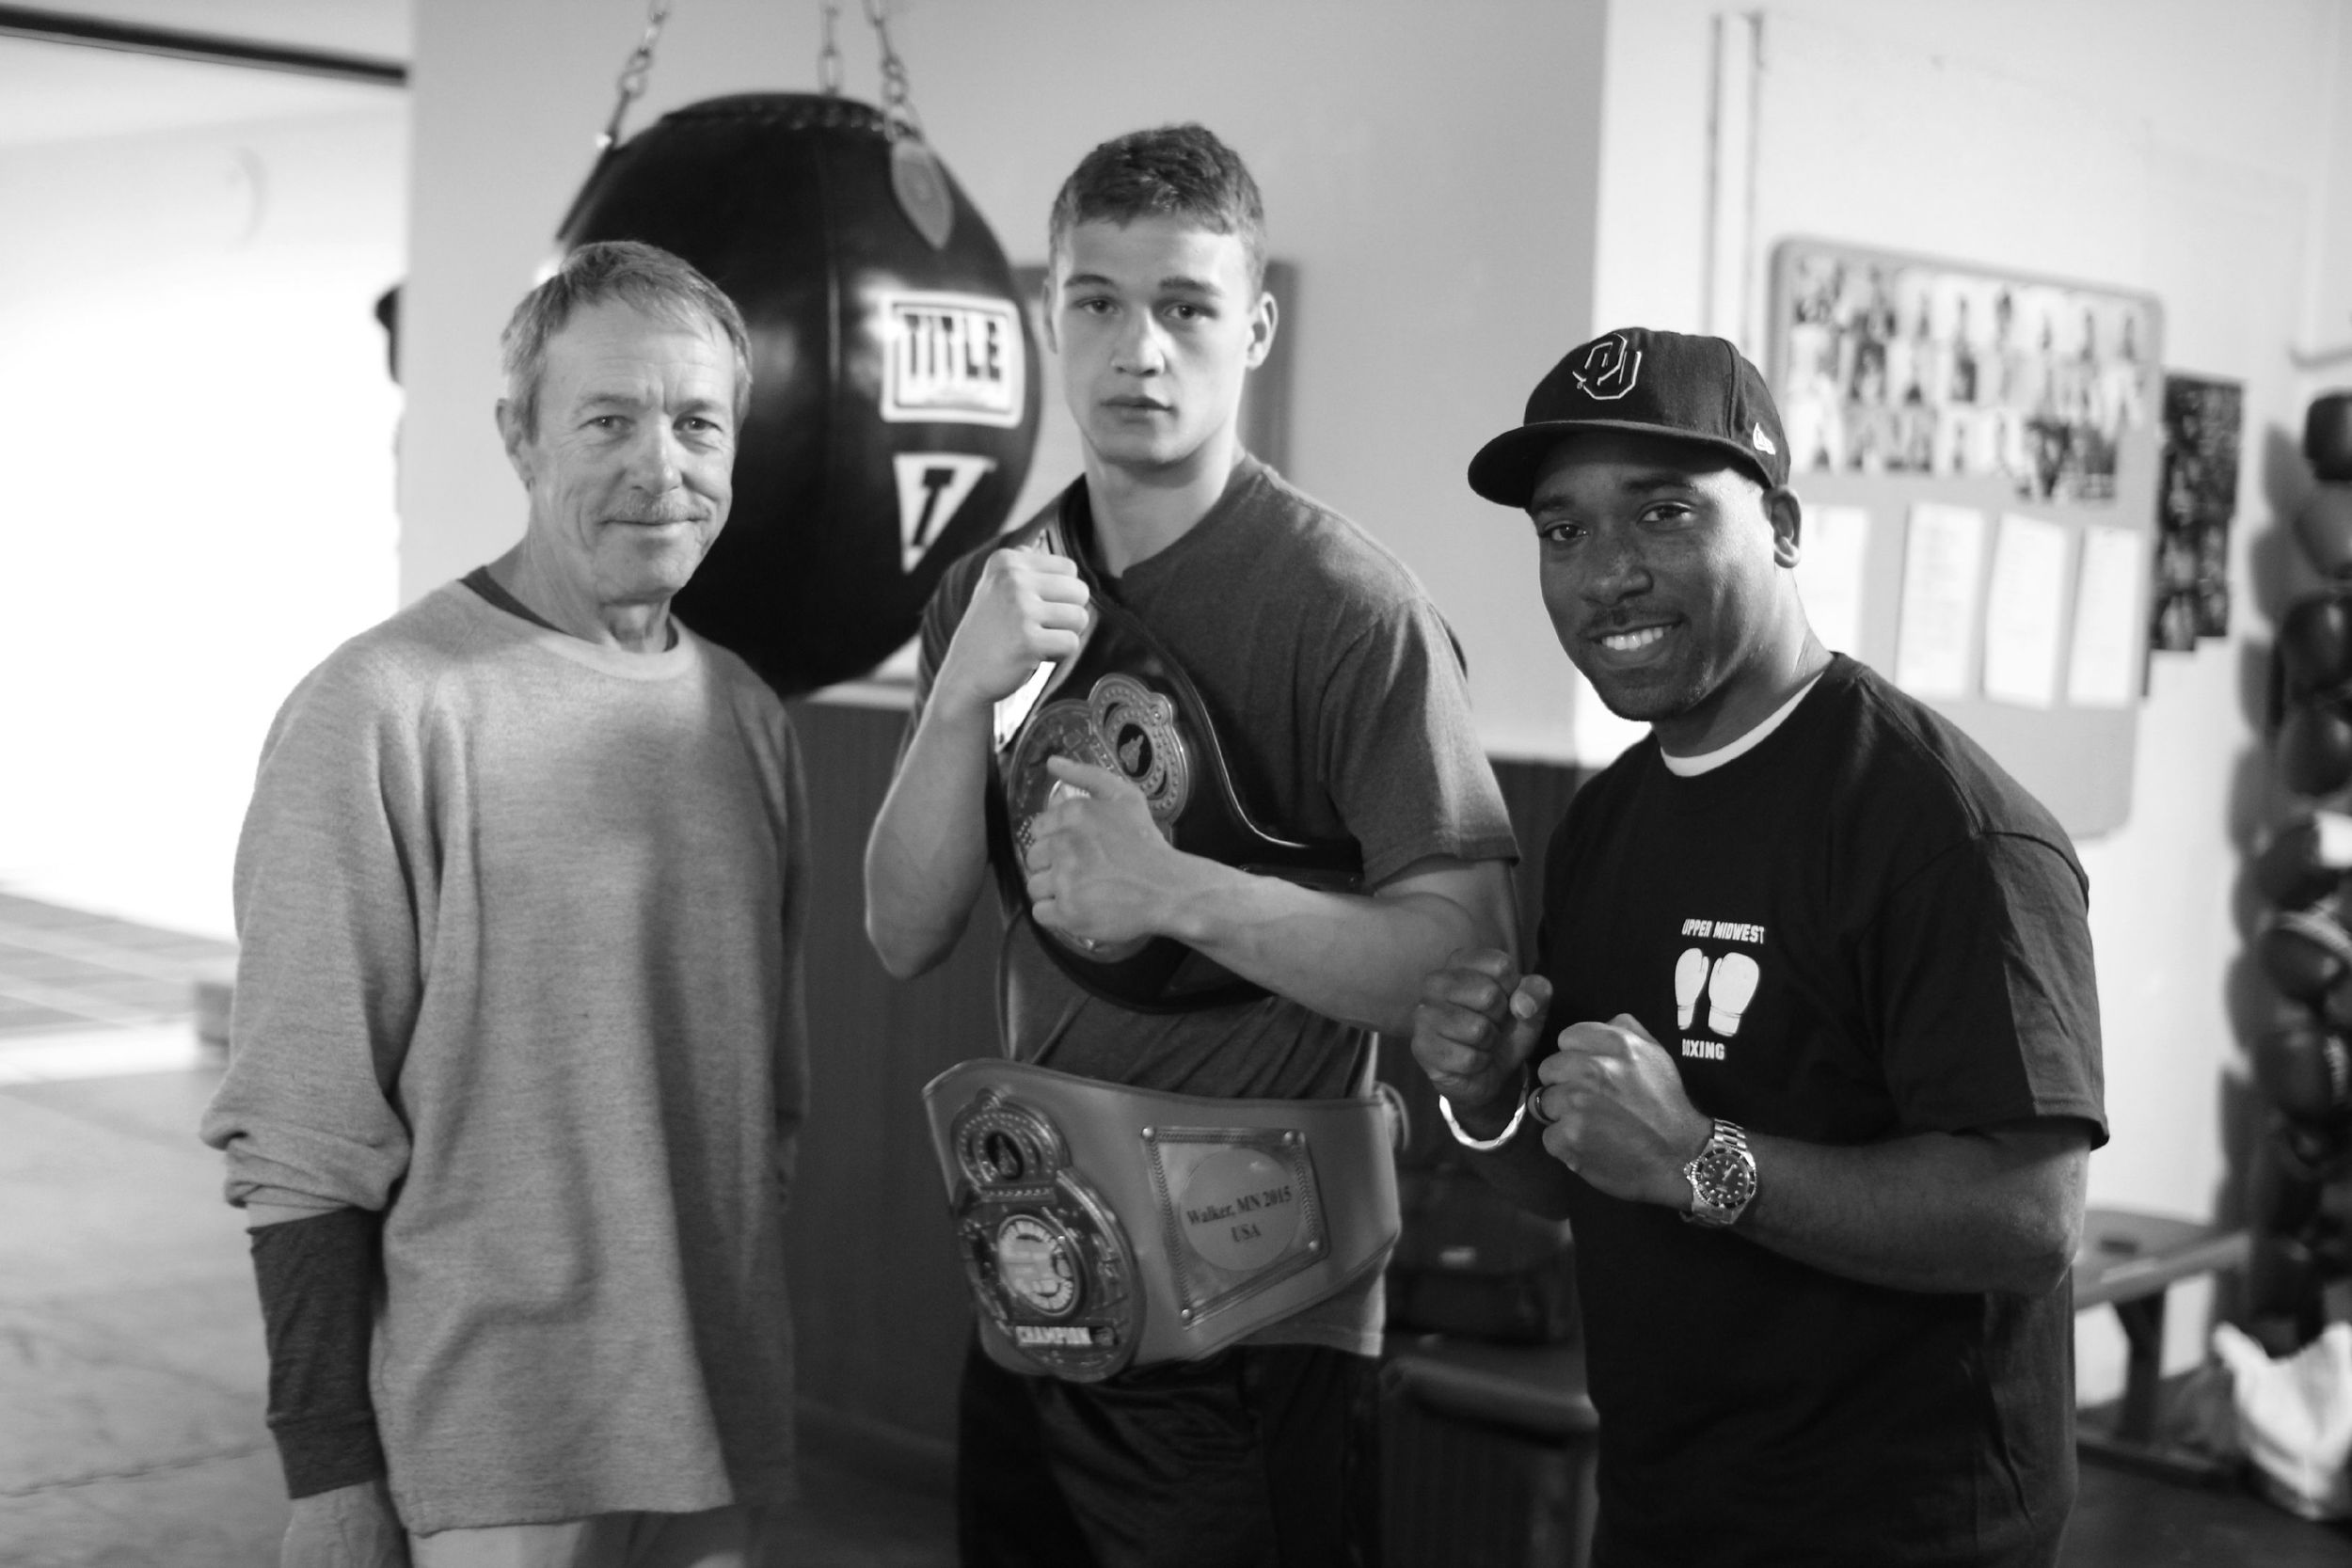 From left, Bill Pomeroy, Justus Pomeroy and Kendric Carter at Lion's Den Boxing in Winona, Minn.